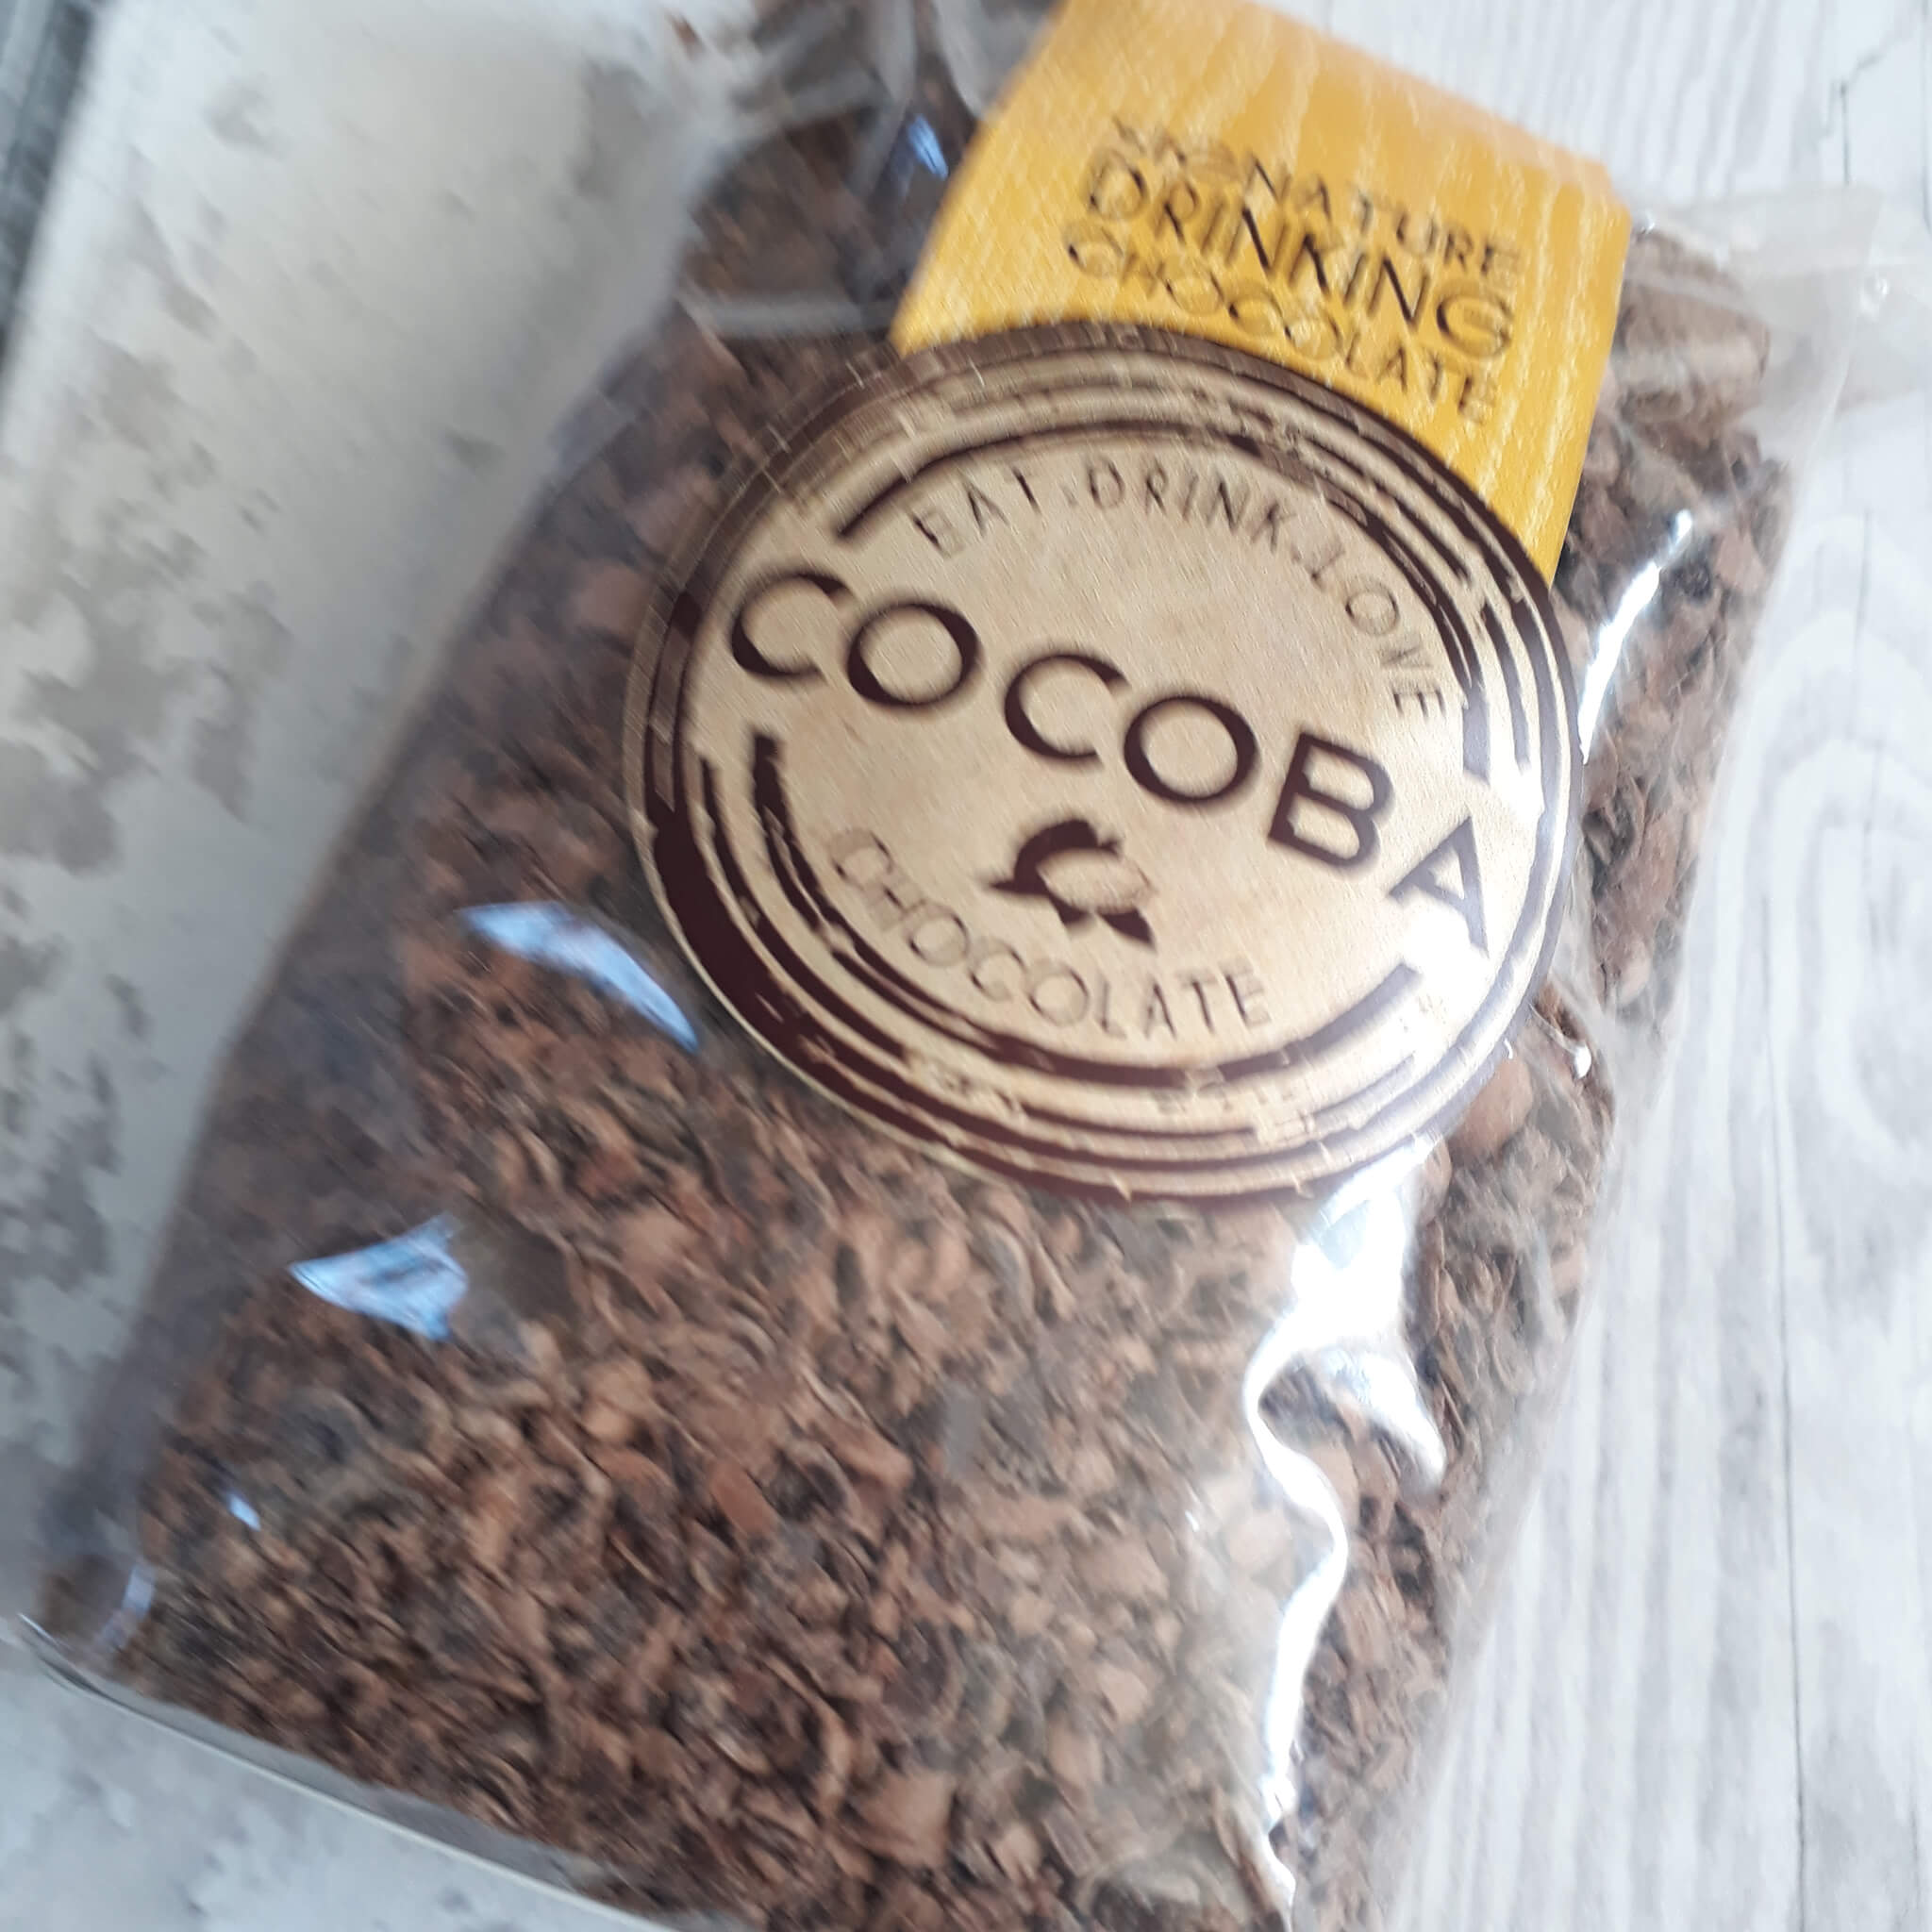 Cocoba Hot Chocolate Flakes